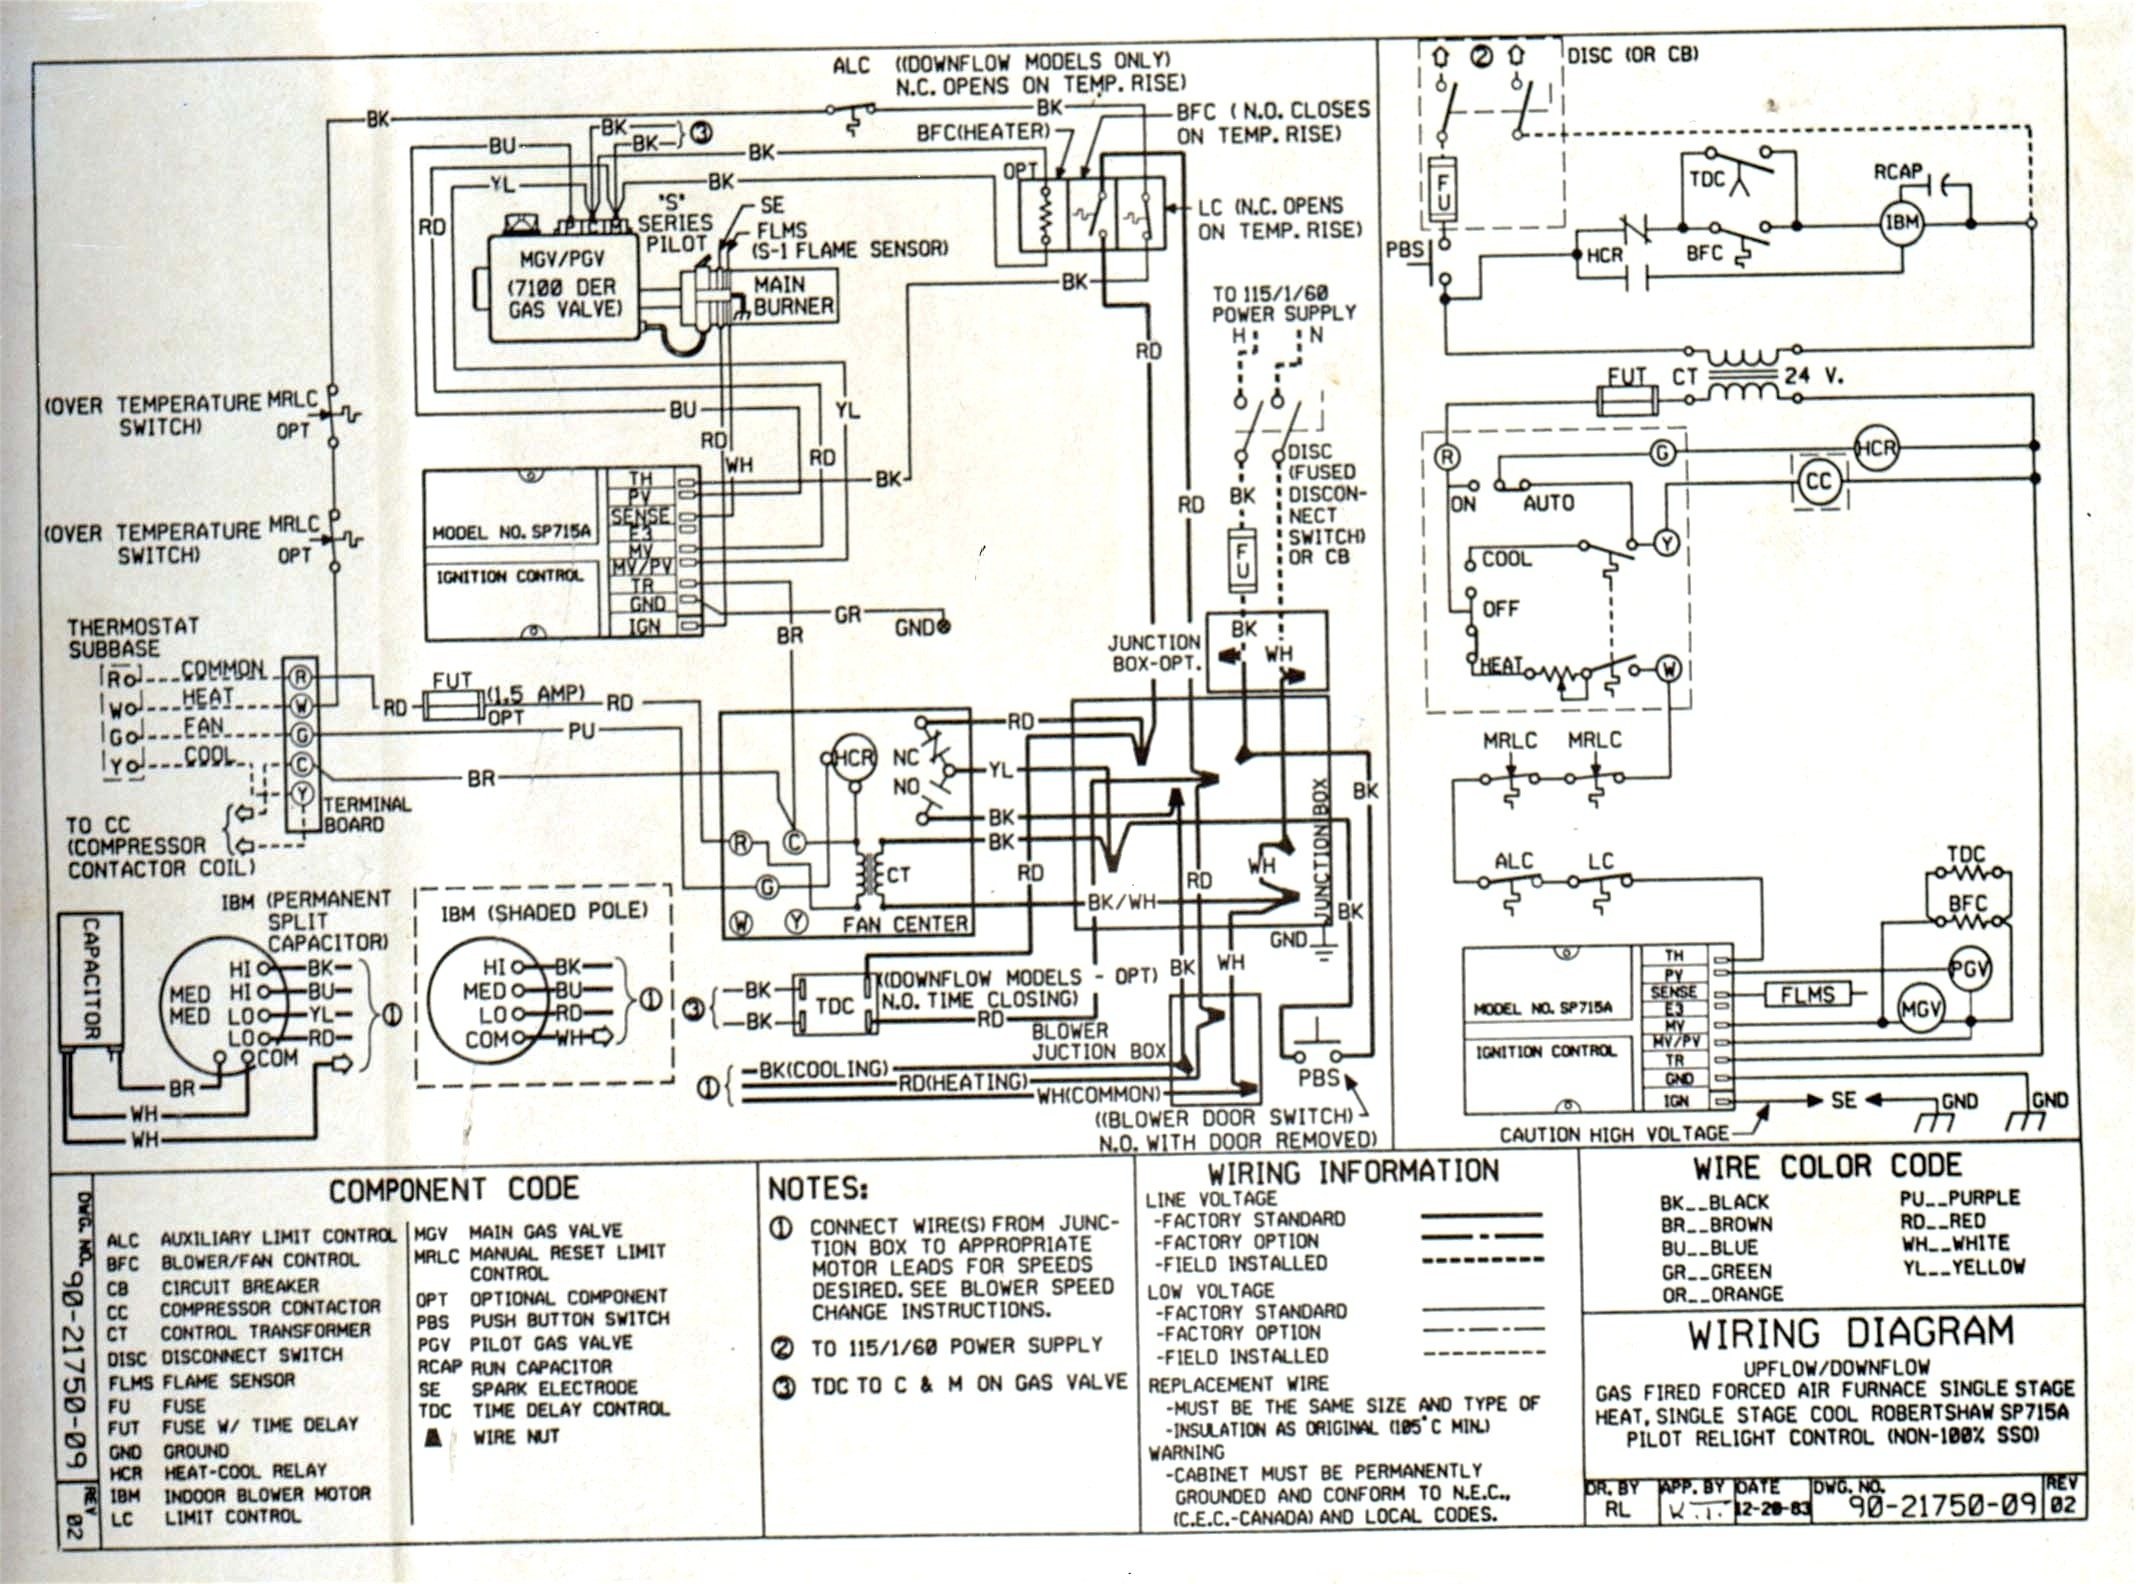 eb15b wiring diagram Collection-Central Electric Furnace Model Eb15b Wiring Diagram Best Furnace Wiring Diagram Eb15b Electric Noticeable Goodman with 14-k